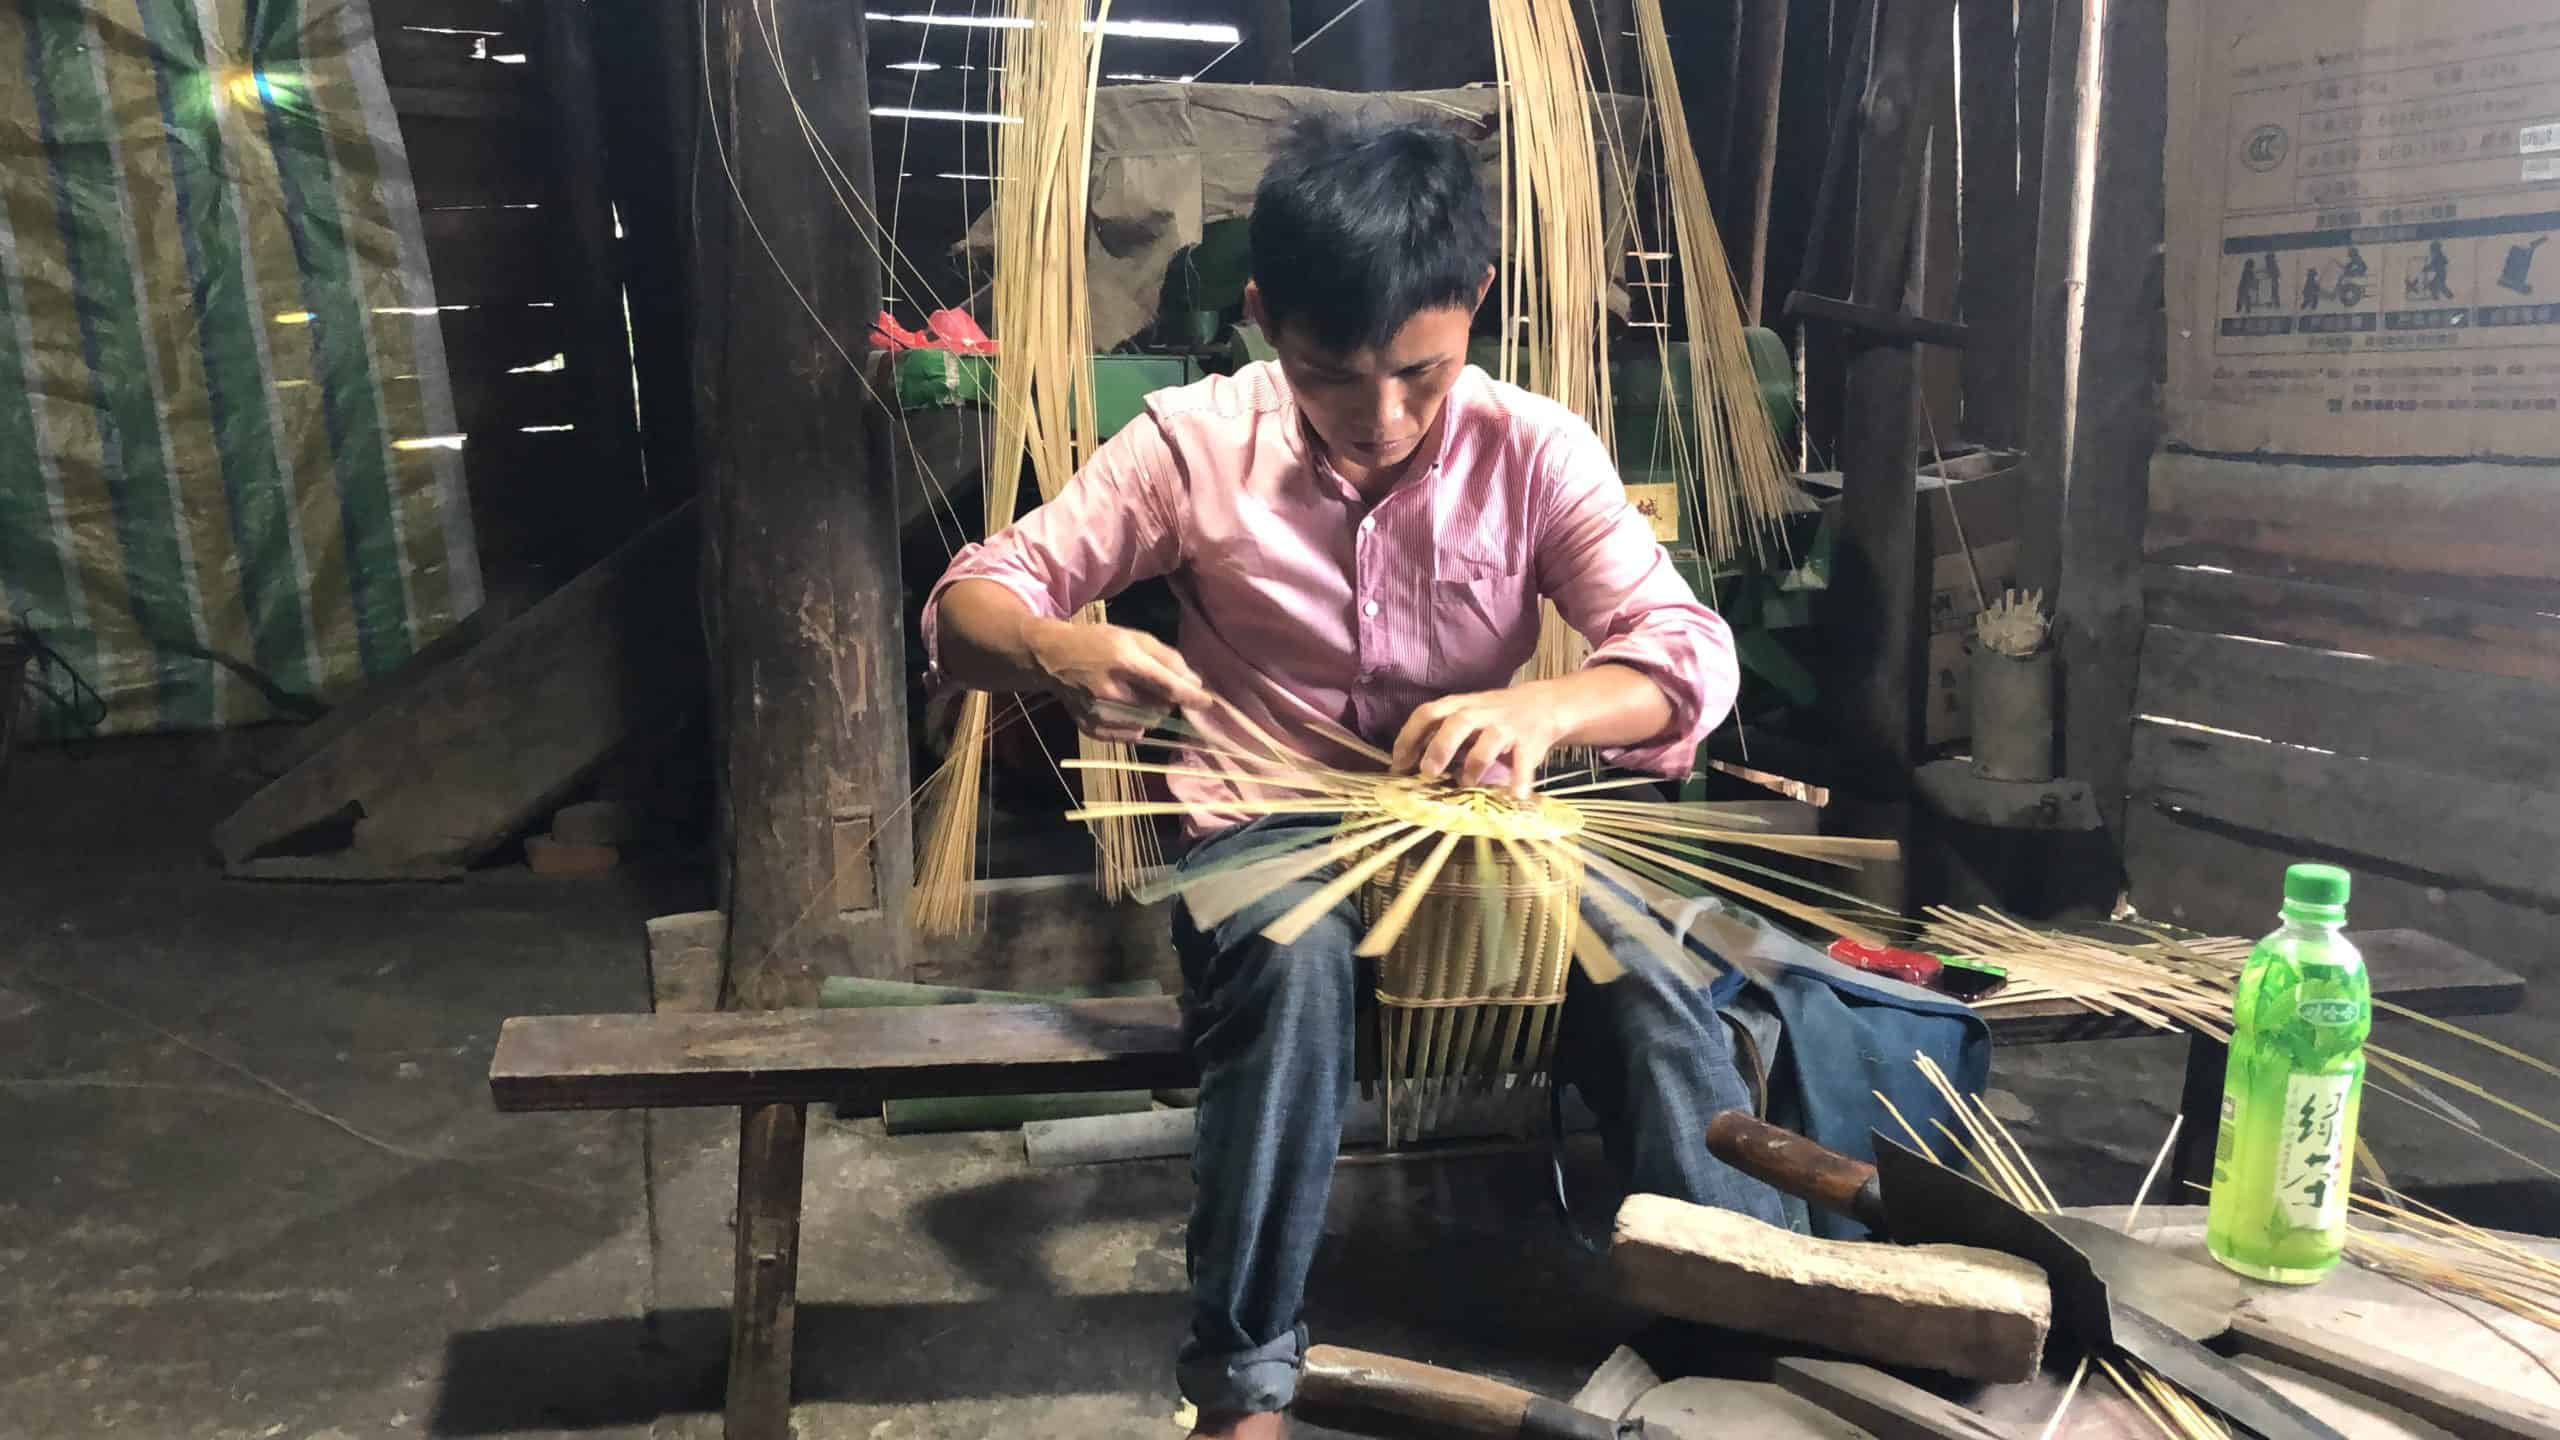 A man sitting on a bench making a basket from cane splits..